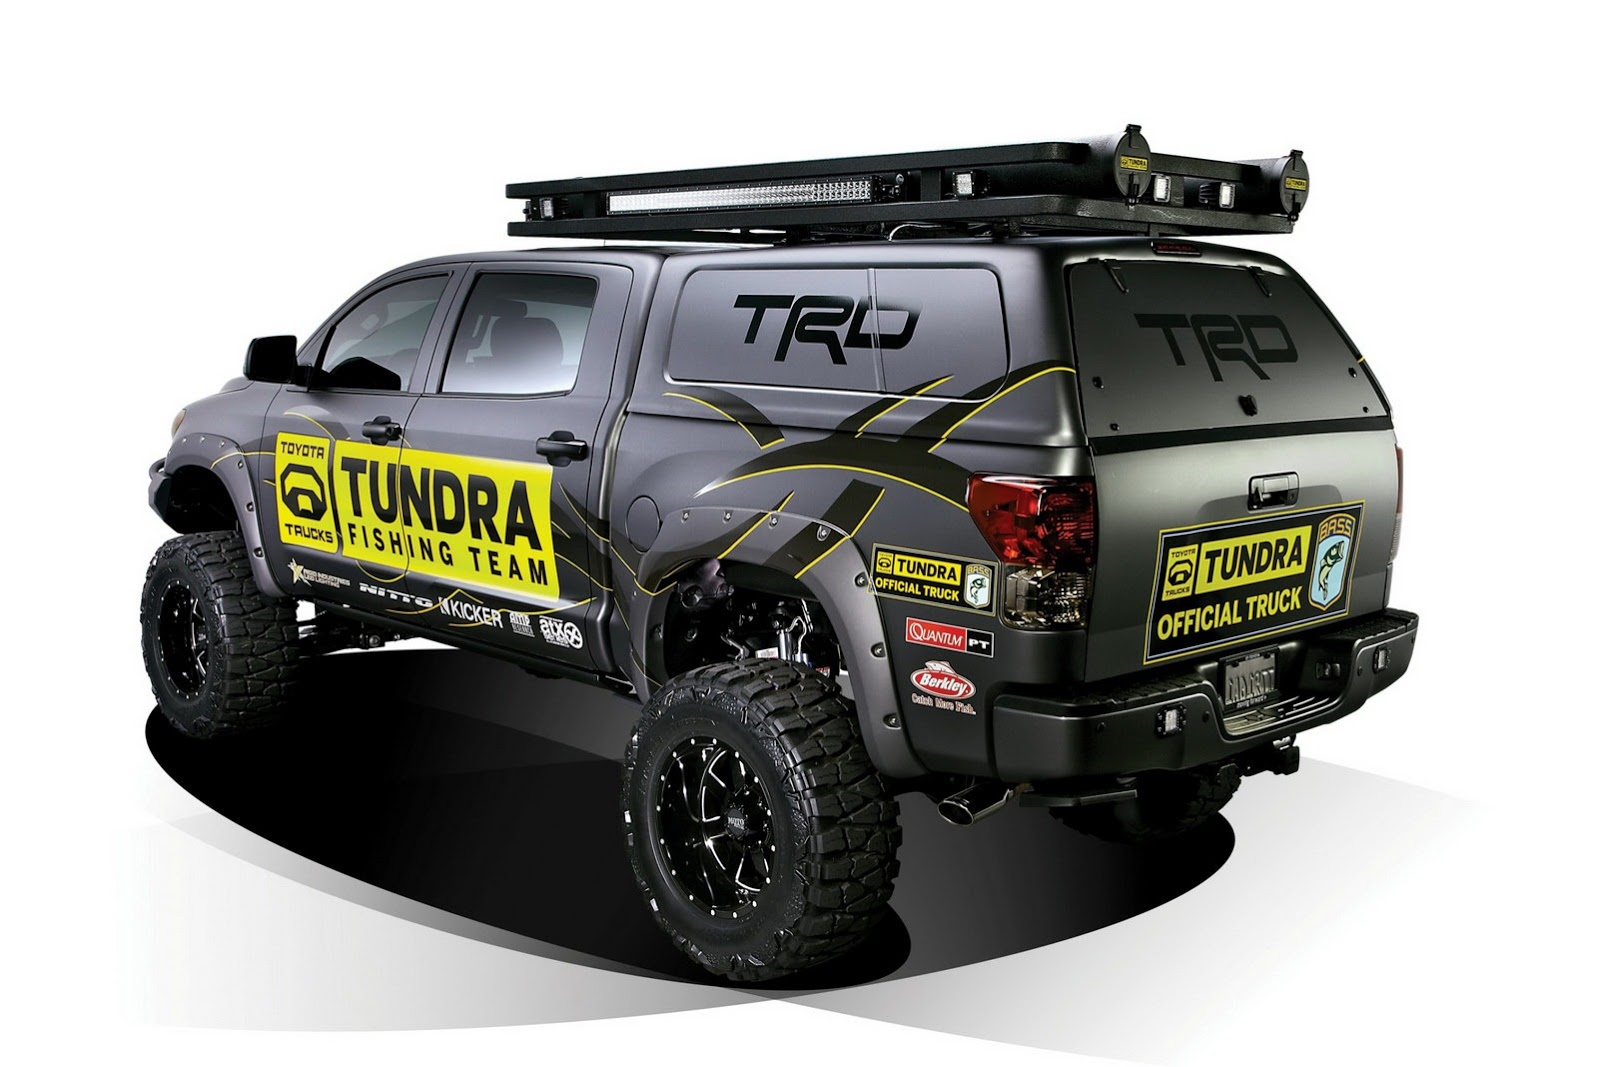 tundra trd concept fishing sema toyota ultimate cs motorsport brings custom myers pro autoevolution sport sports britt engine